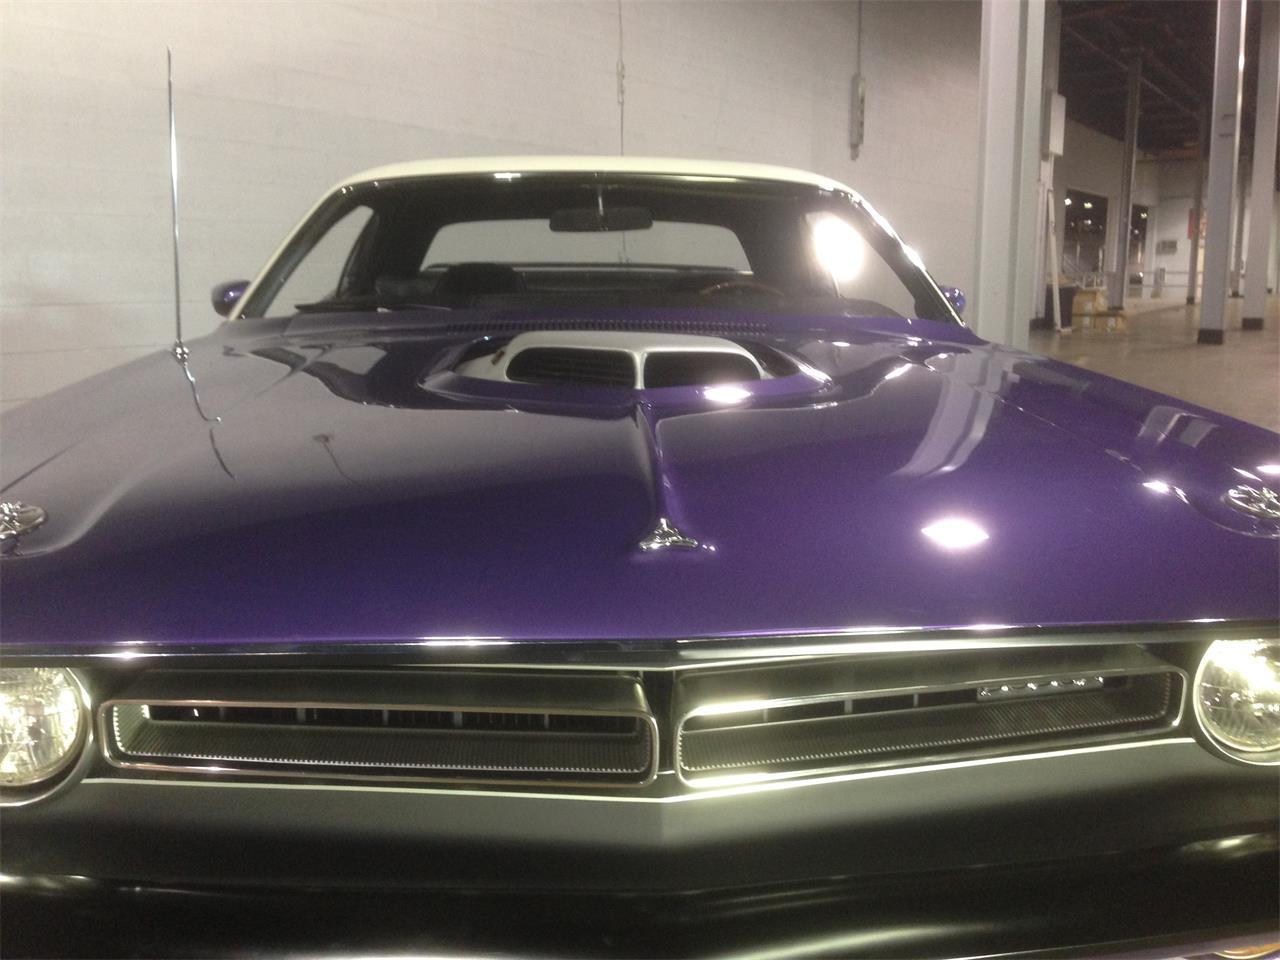 Large Picture of Classic 1971 Dodge Challenger R/T located in Frankfort Illinois - $139,900.00 Offered by a Private Seller - G6NM